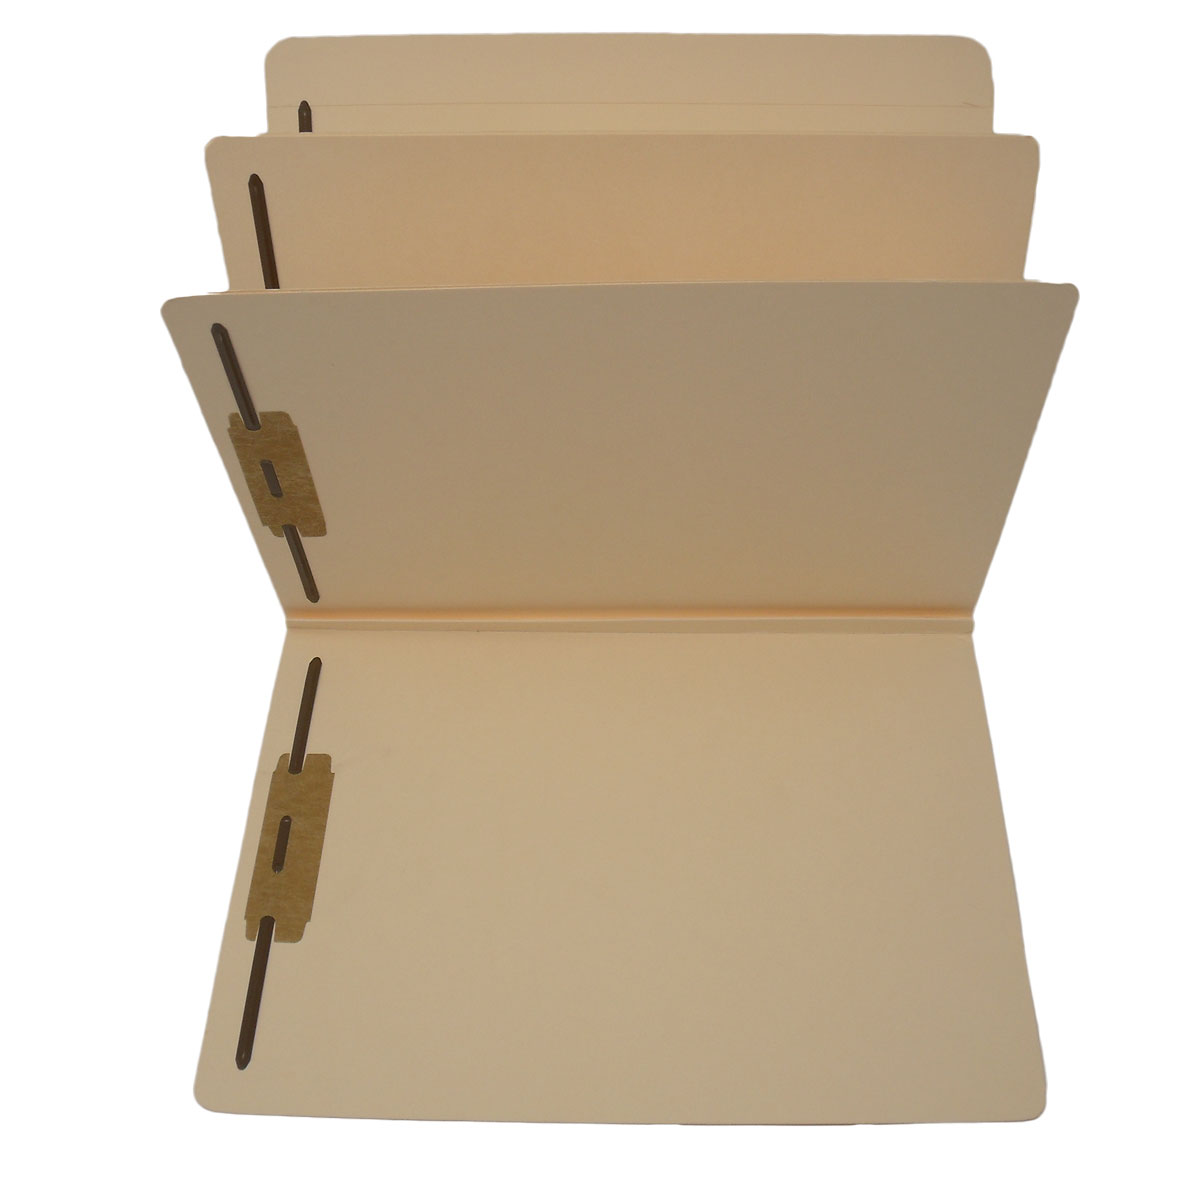 S-9088 - 14 Pt. Manila Classification Folders, Full Cut Top Tab, Letter Size, 2 Divider (Box of 15)